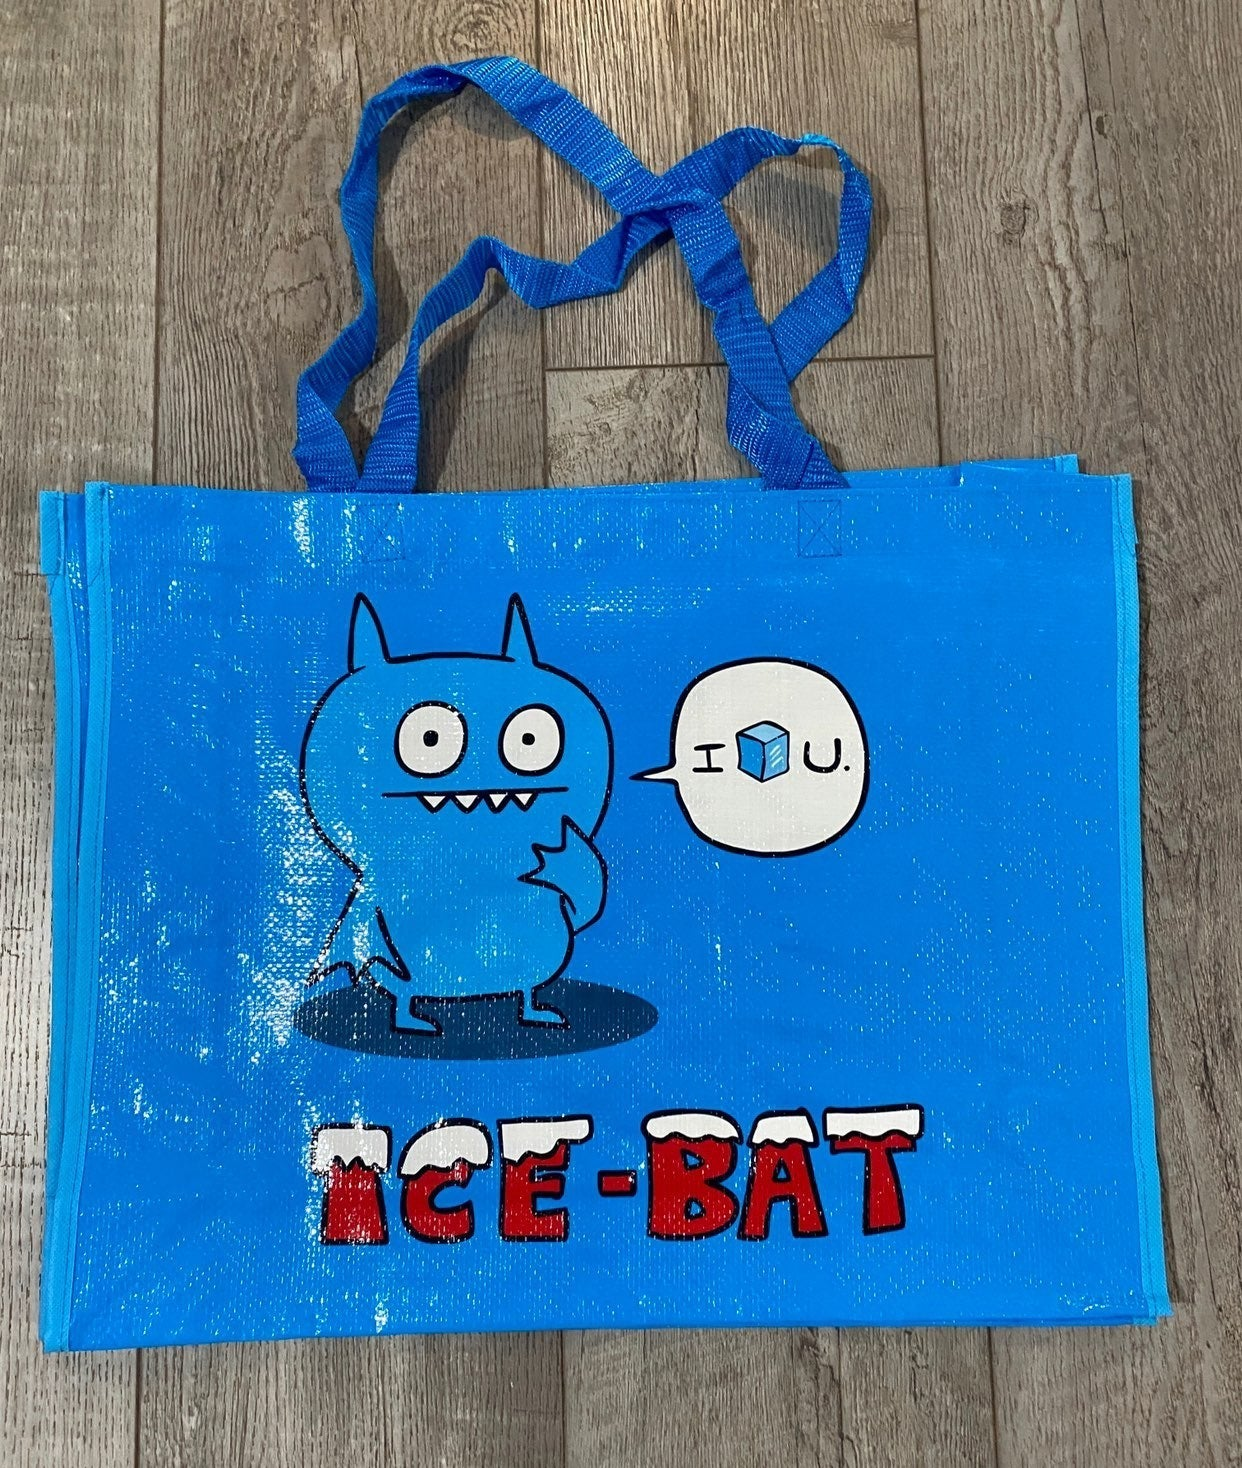 Blue Uglydoll Tote bag with Ice-Bat